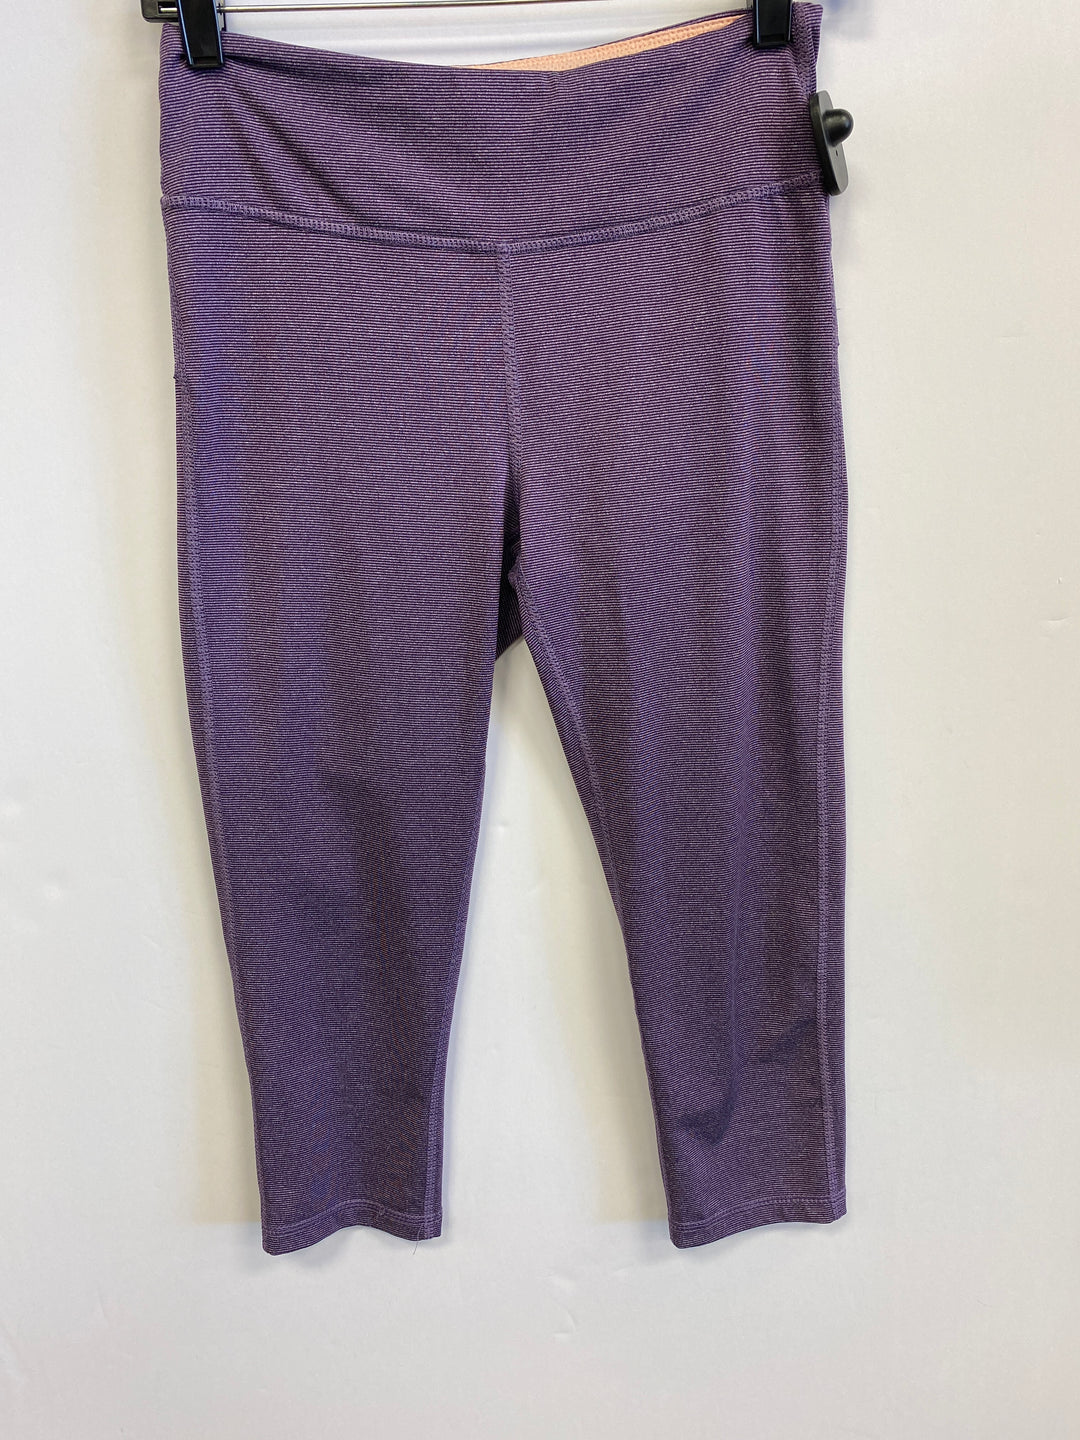 Primary Photo - BRAND: MARIKA <BR>STYLE: ATHLETIC CAPRIS <BR>COLOR: PURPLE <BR>SIZE: S <BR>SKU: 298-29814-63198